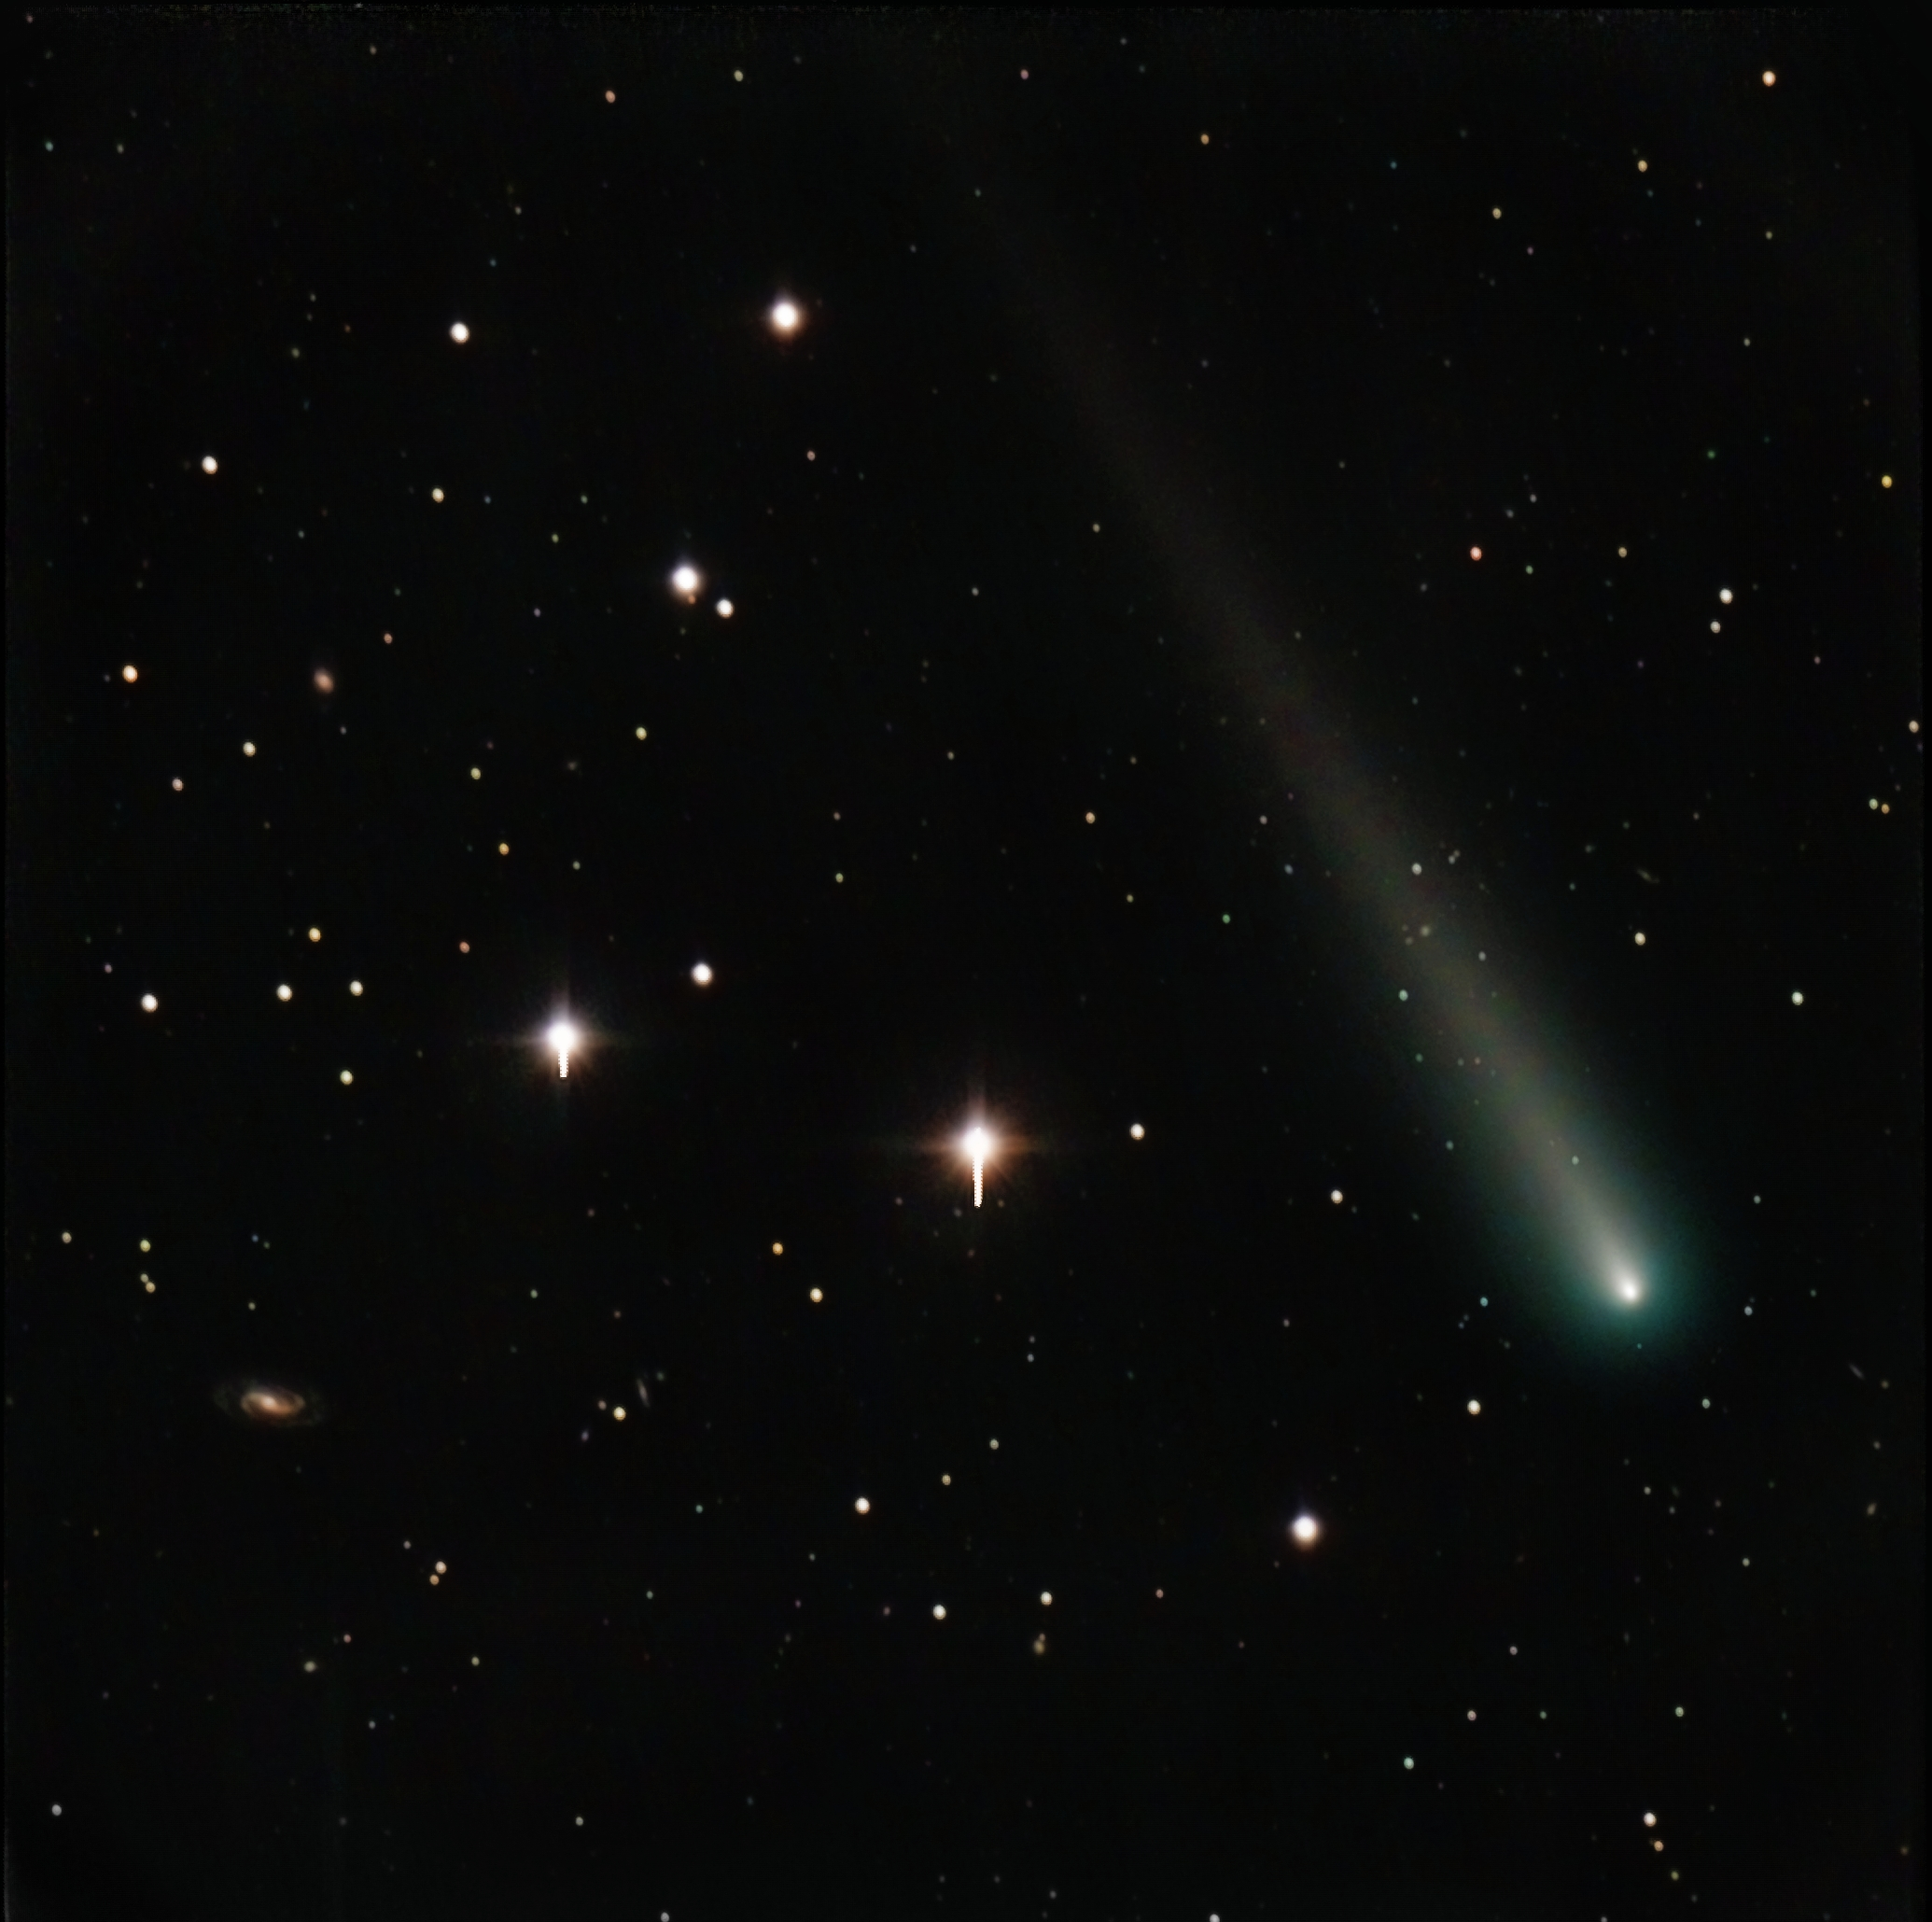 Comet ISON Soars Past Distant Galaxies in Amazing Photo